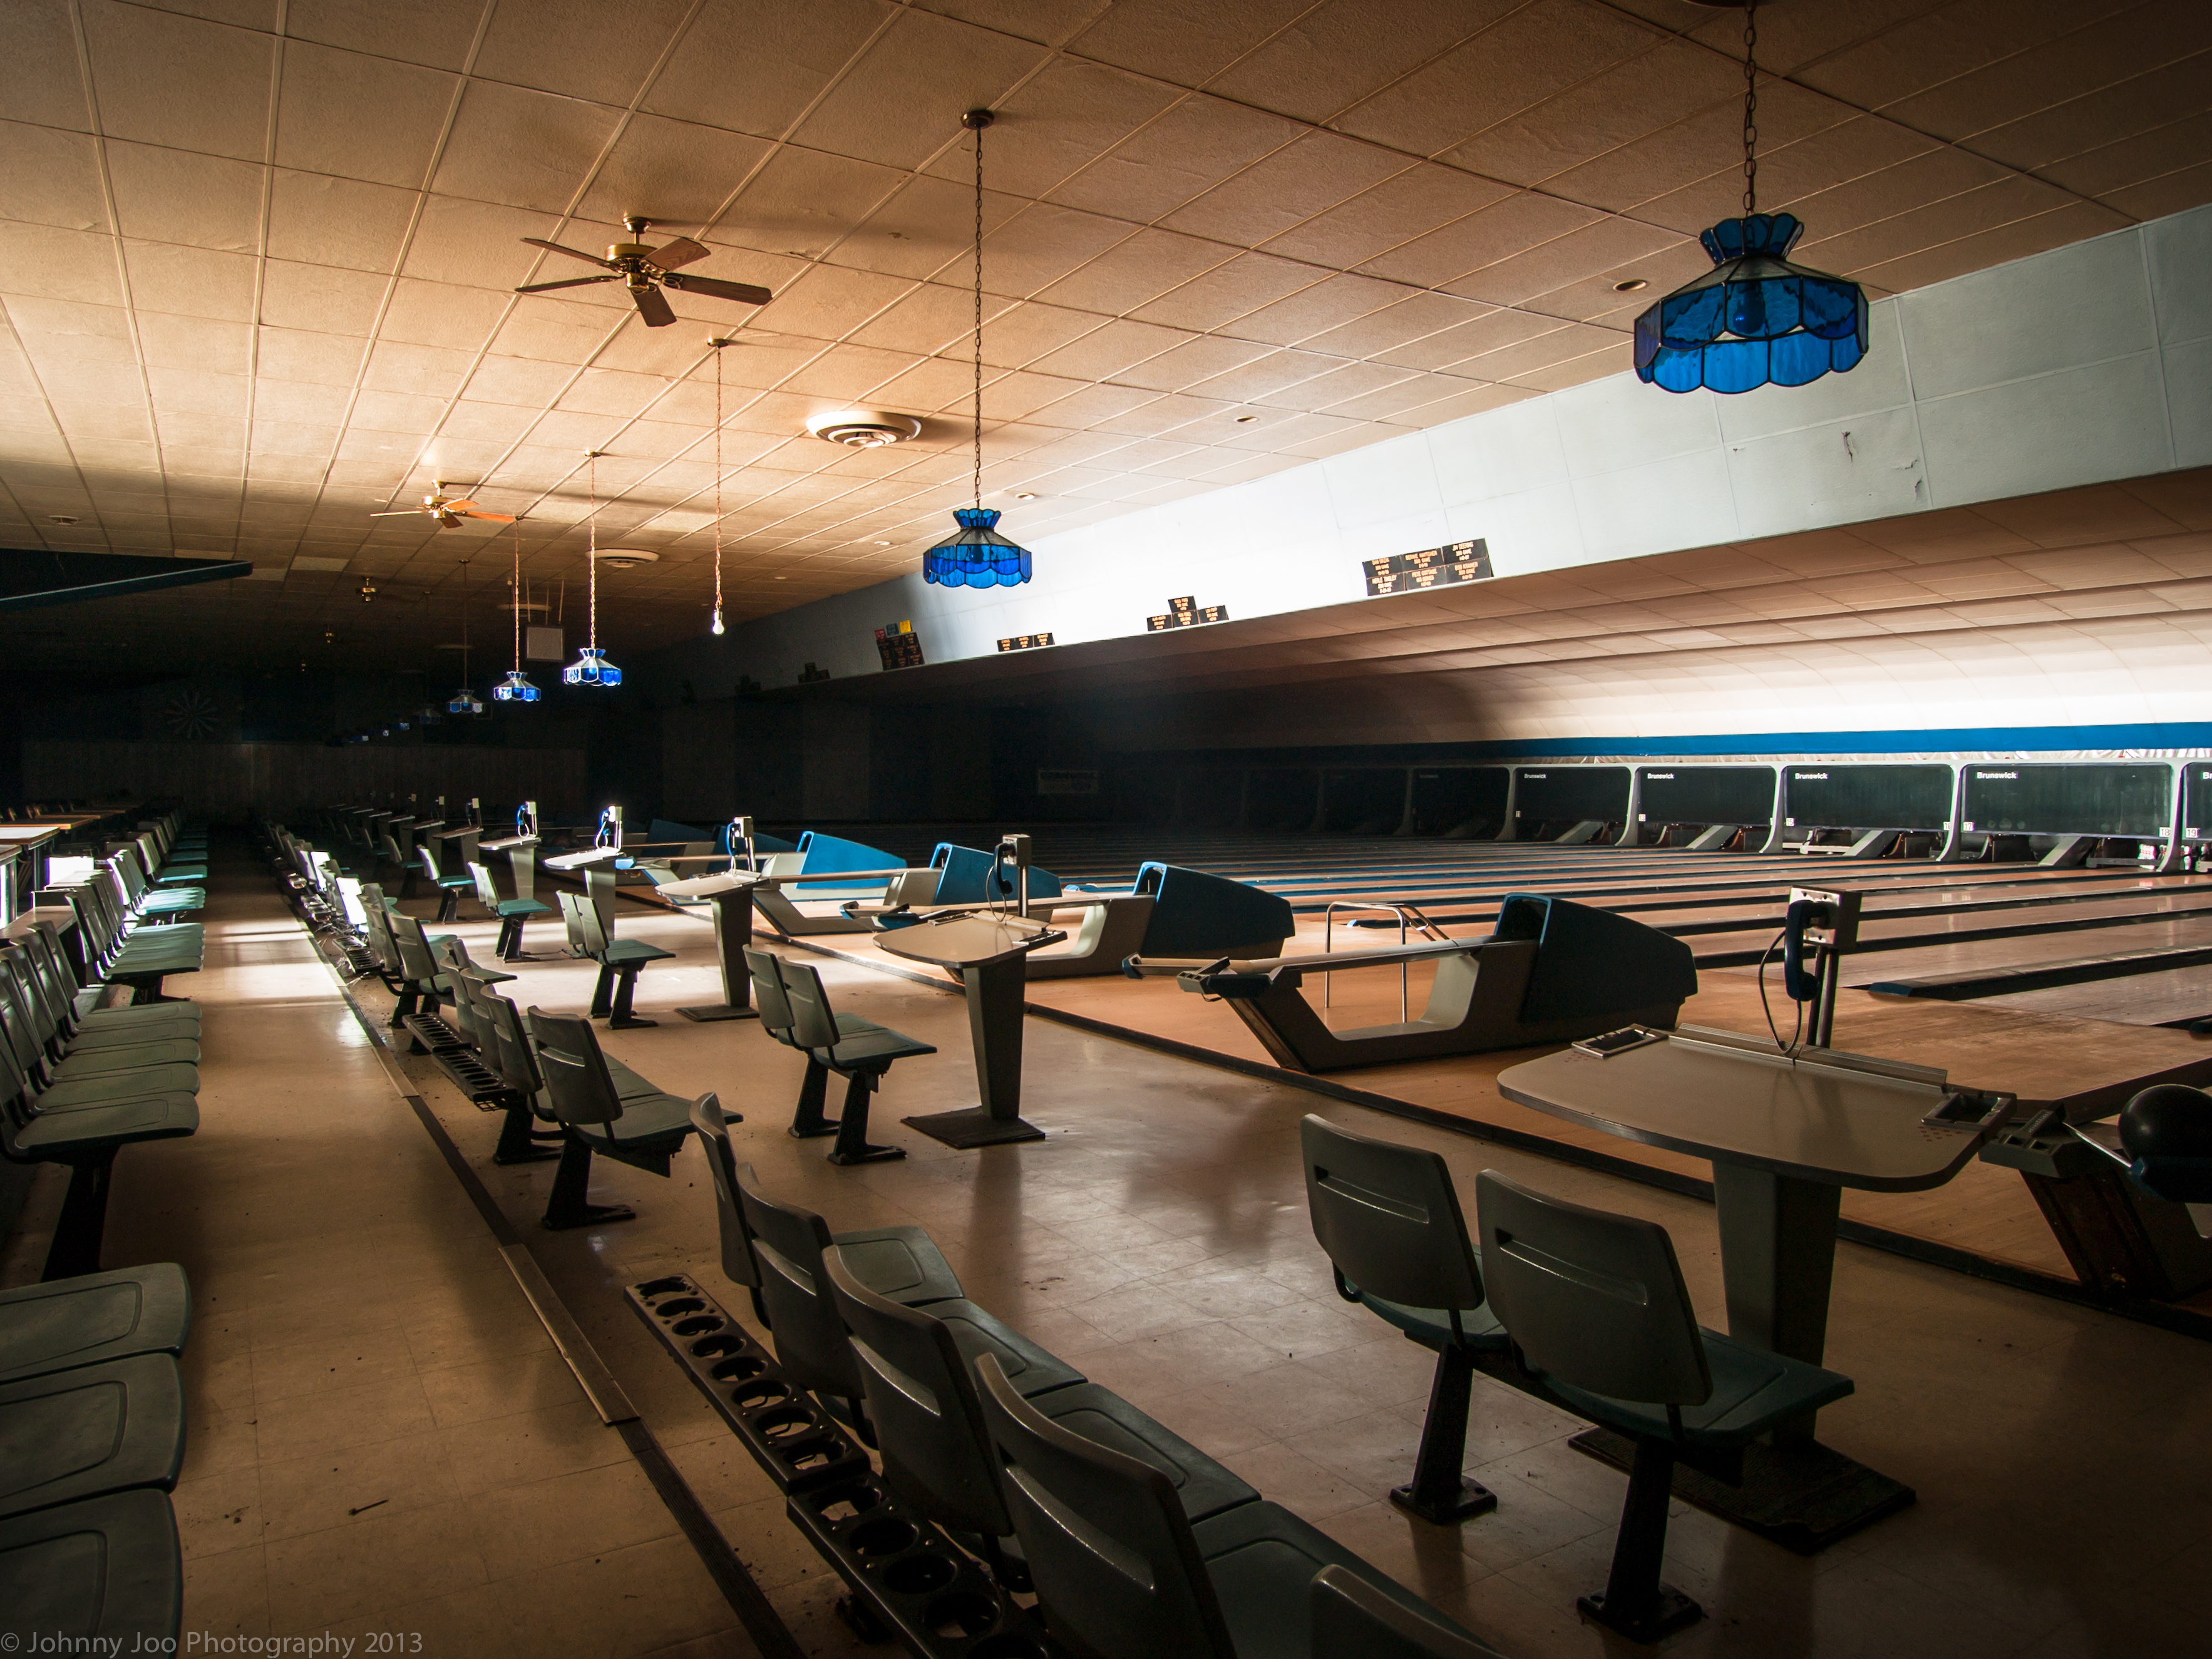 The Pins Are Still Standing At This Abandoned Bowling